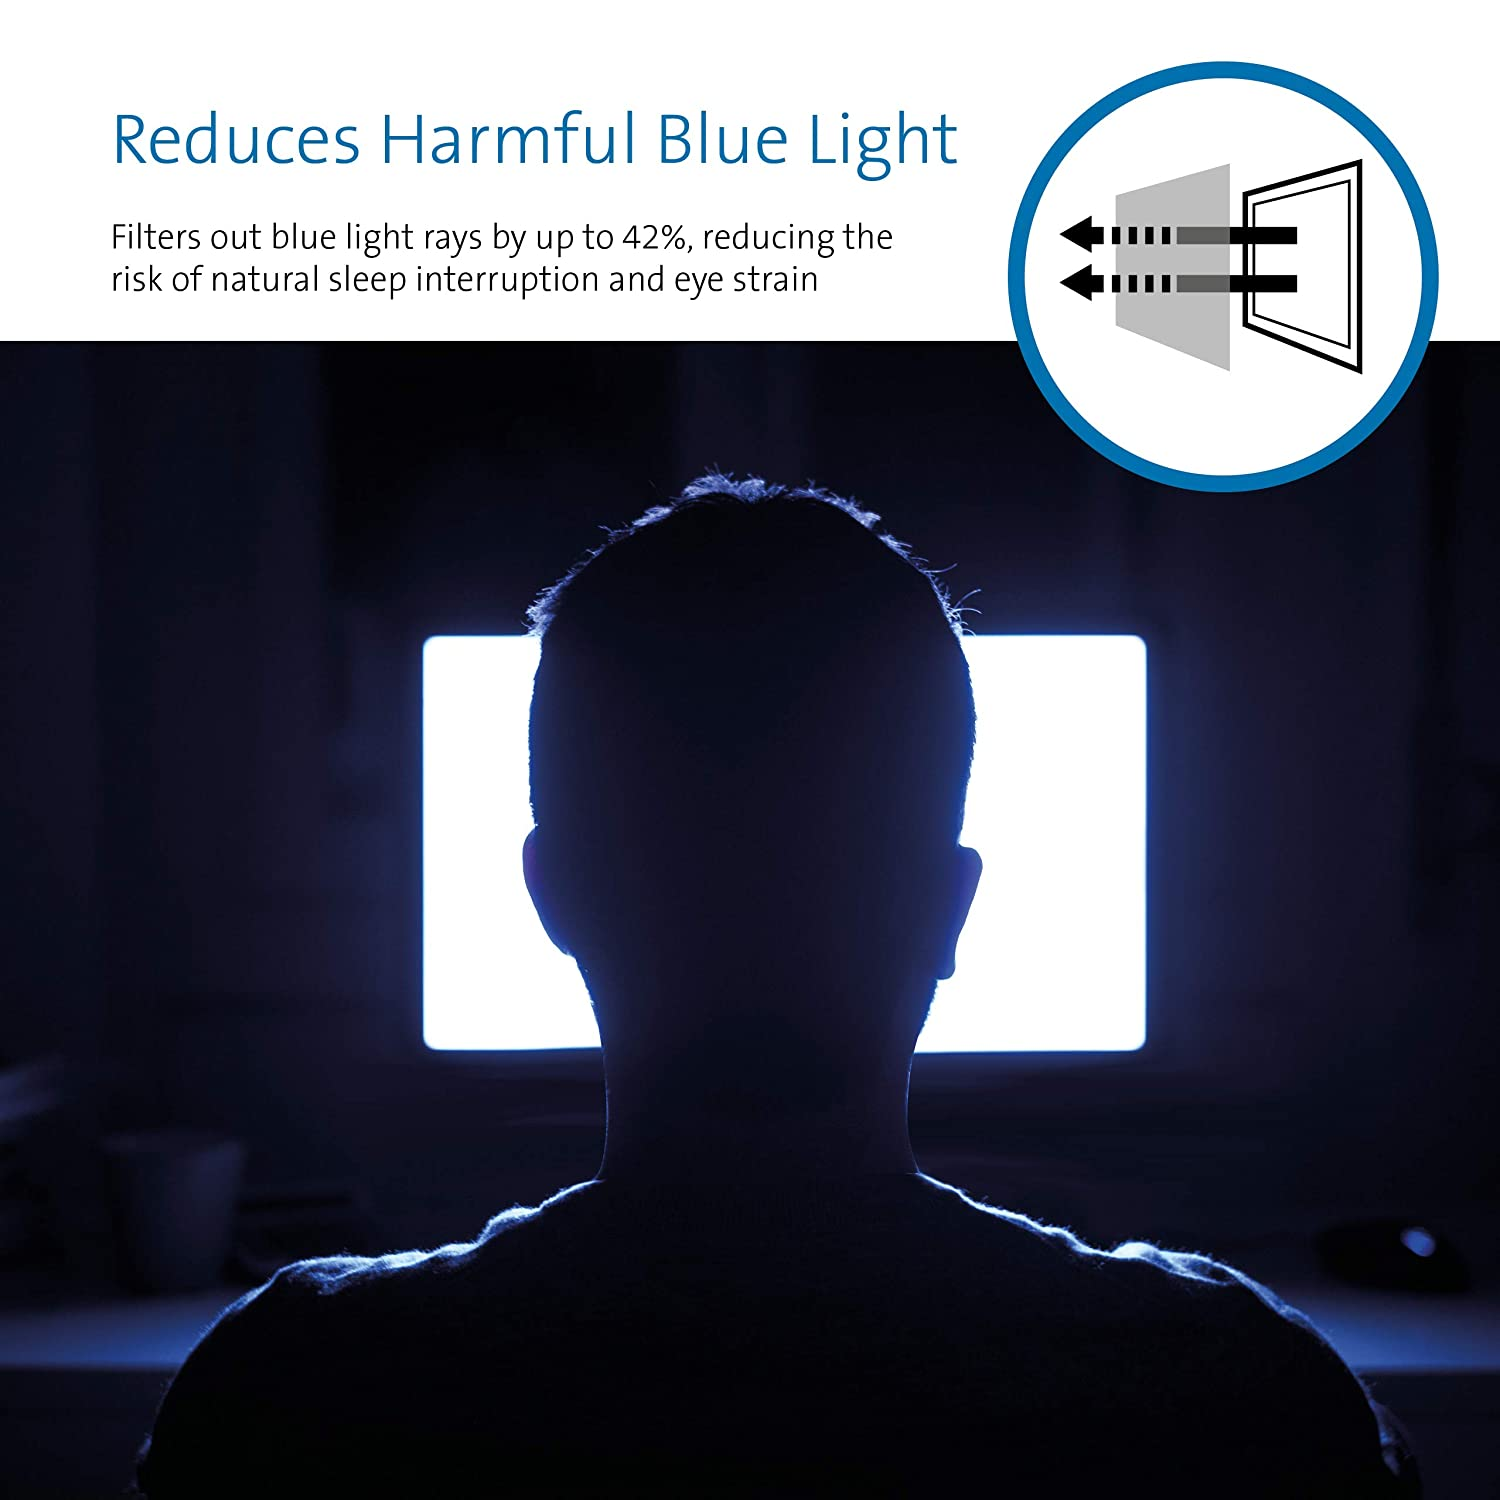 limits viewing angle supporting GDPR compliance reduced blue light via anti-glare coating Kensington Monitor Screen Privacy Filter 20 LG ViewSonic Samsung 16: 9